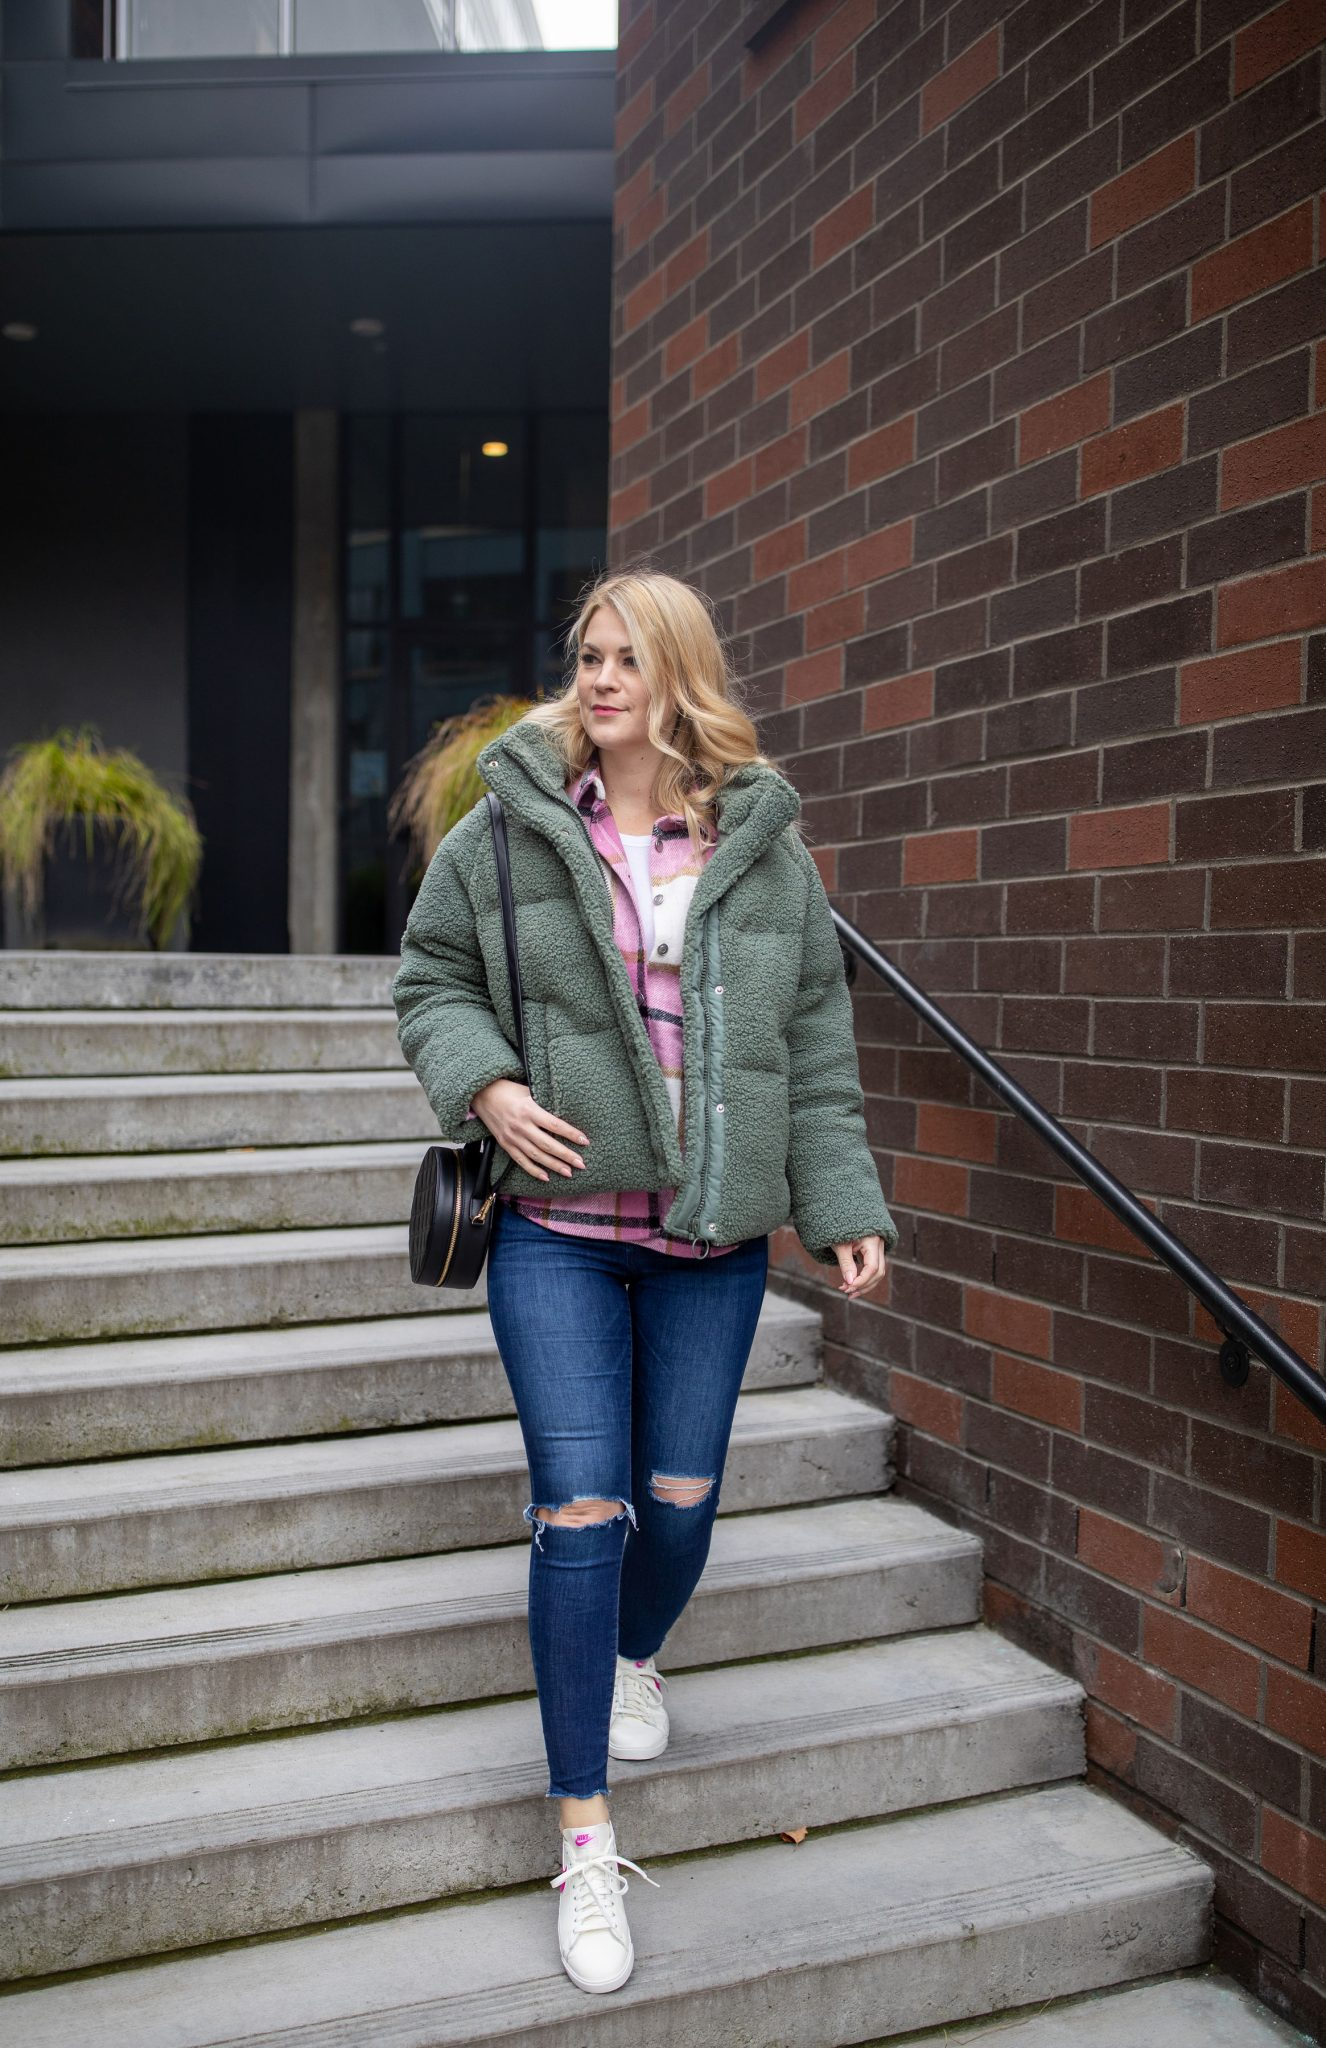 Puffer Jacket by popular Seattle tall fashion blog, Whit Wanders: image of a woman walking down some cement stairs and wearing a green fleece puffer jacket, oversized plaid button down, distressed denim, and white sneakers.